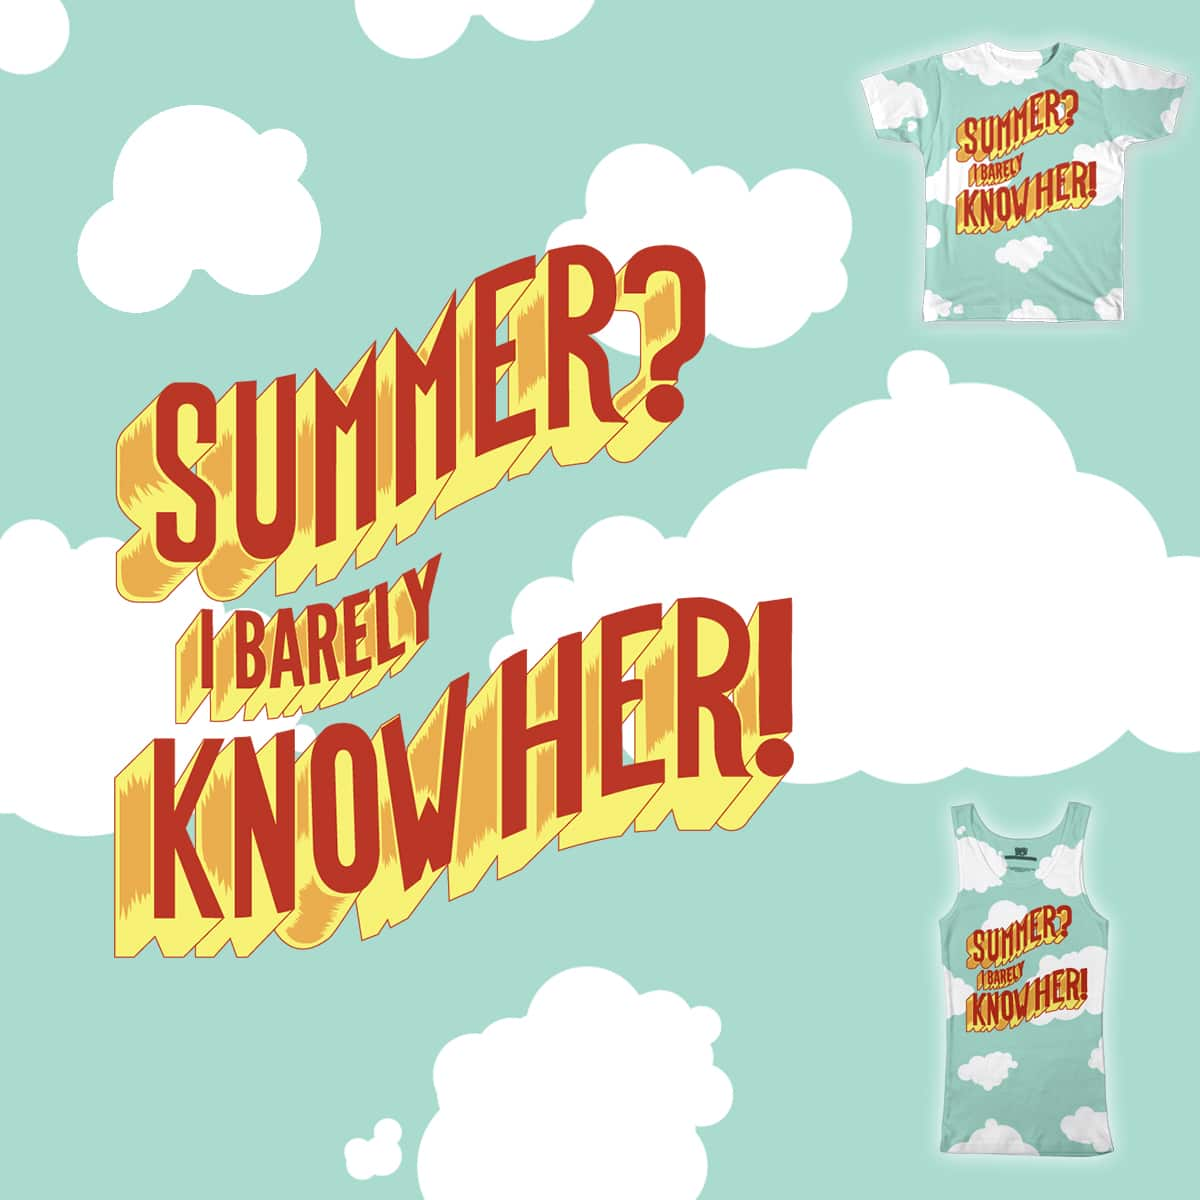 Summer? I barely know her! by Girlblin on Threadless